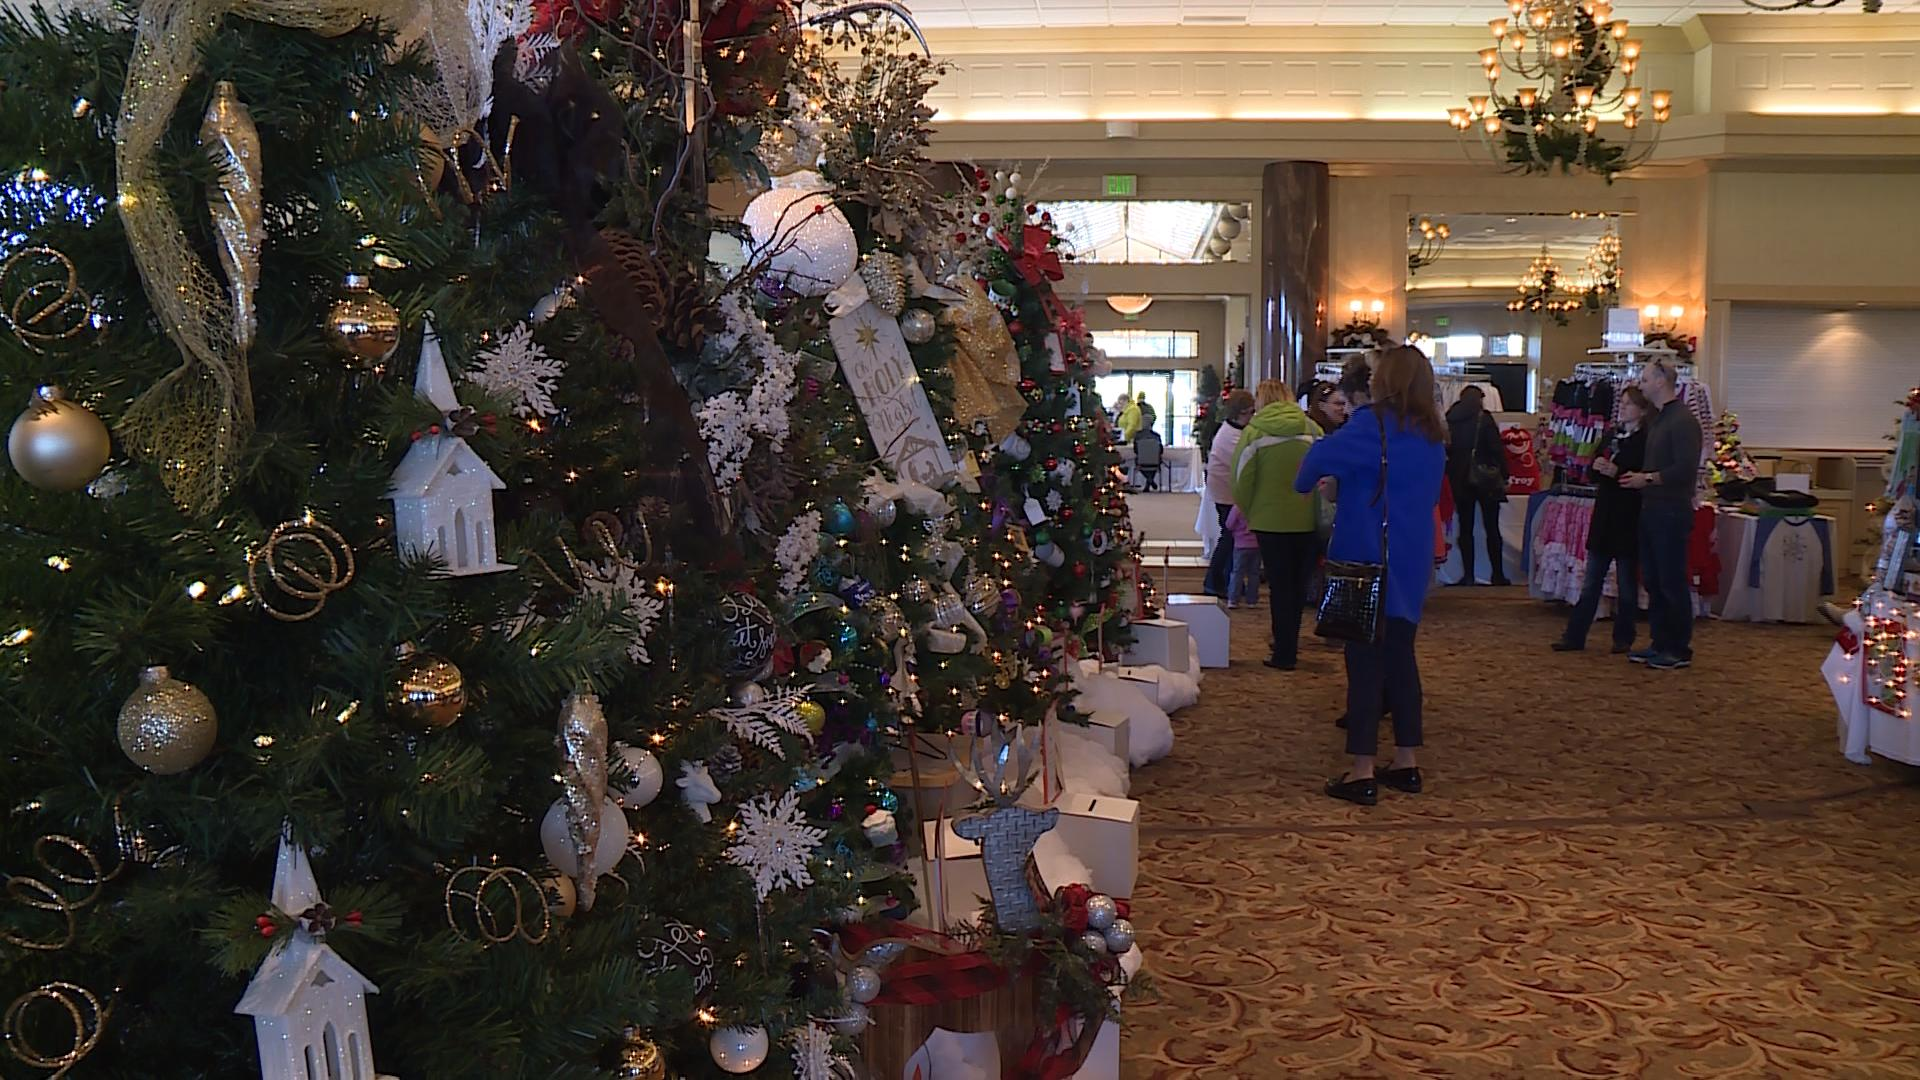 The Festival of Trees event at Apple Mountain kicked off Friday at Apple Mountain in Freeland. (Photo Credit: Andrew Fergerson){ }